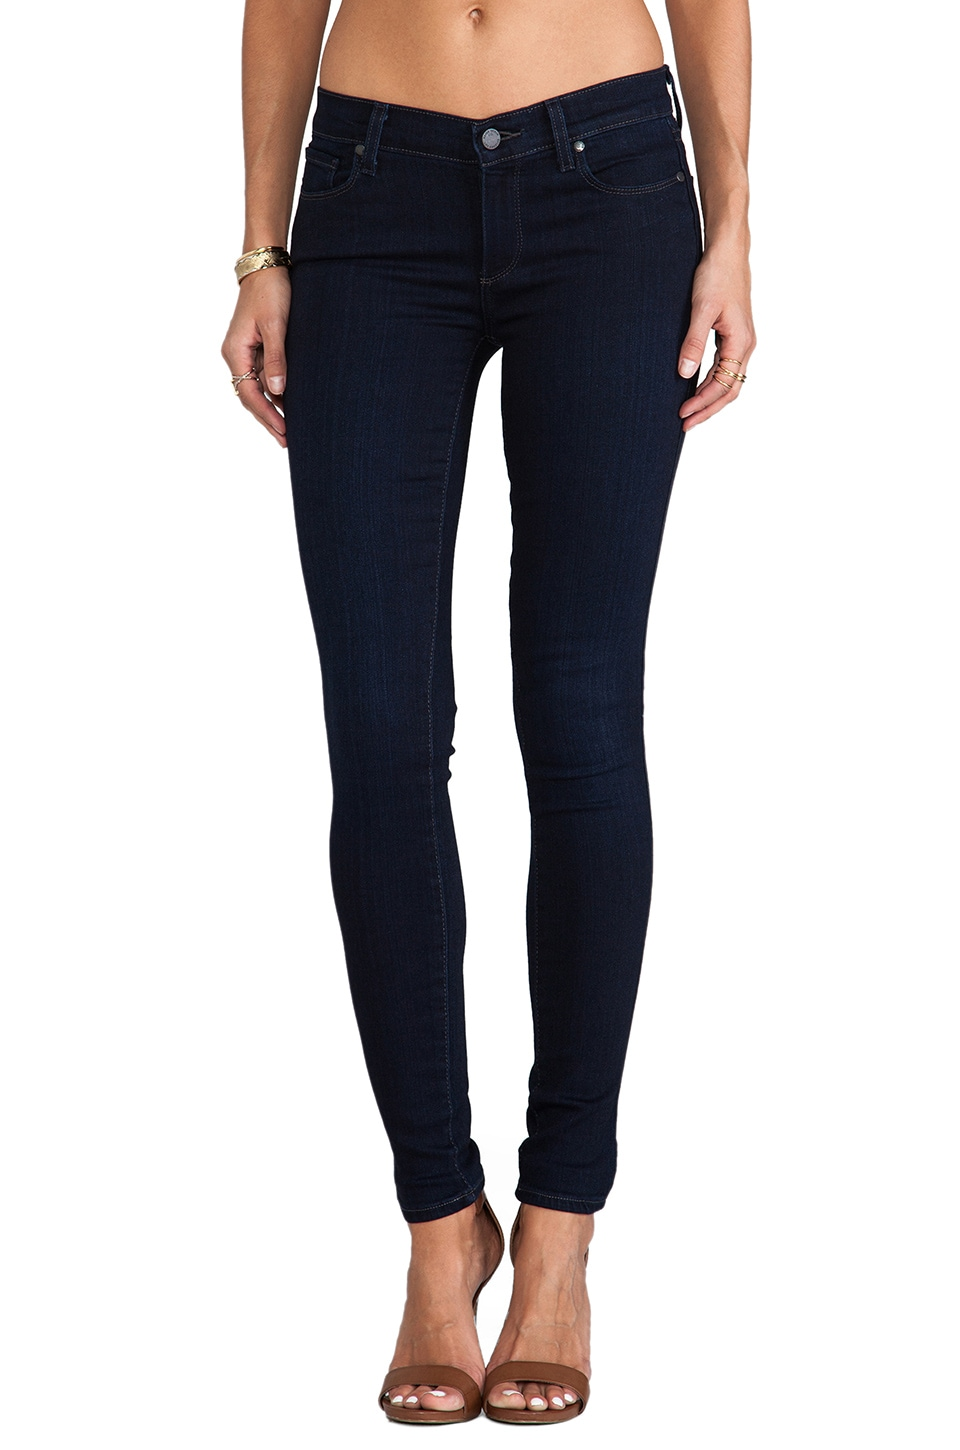 Paige Denim Verdugo Ultra Skinny in Brienne